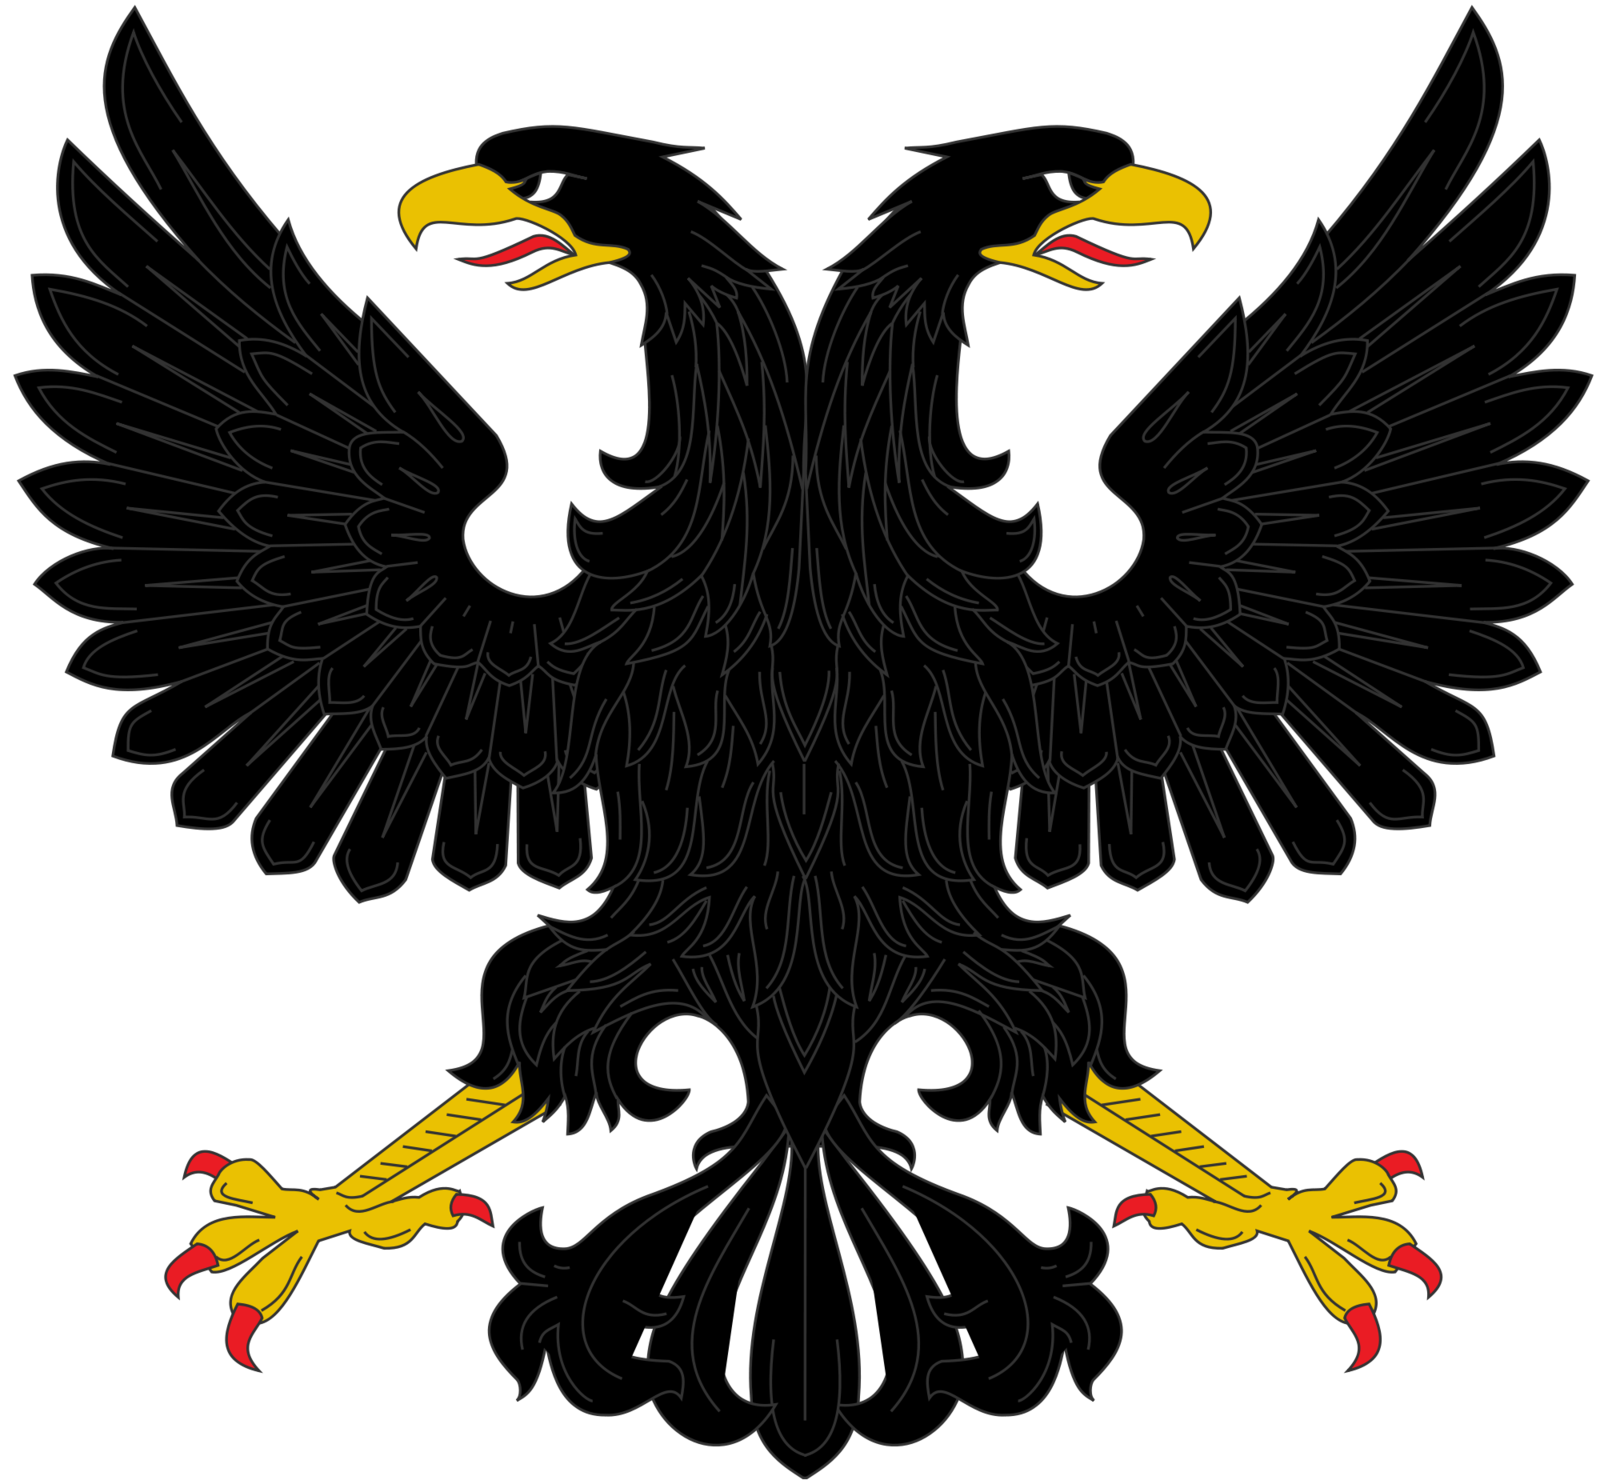 Eagle clipart illustration. Png web icons download